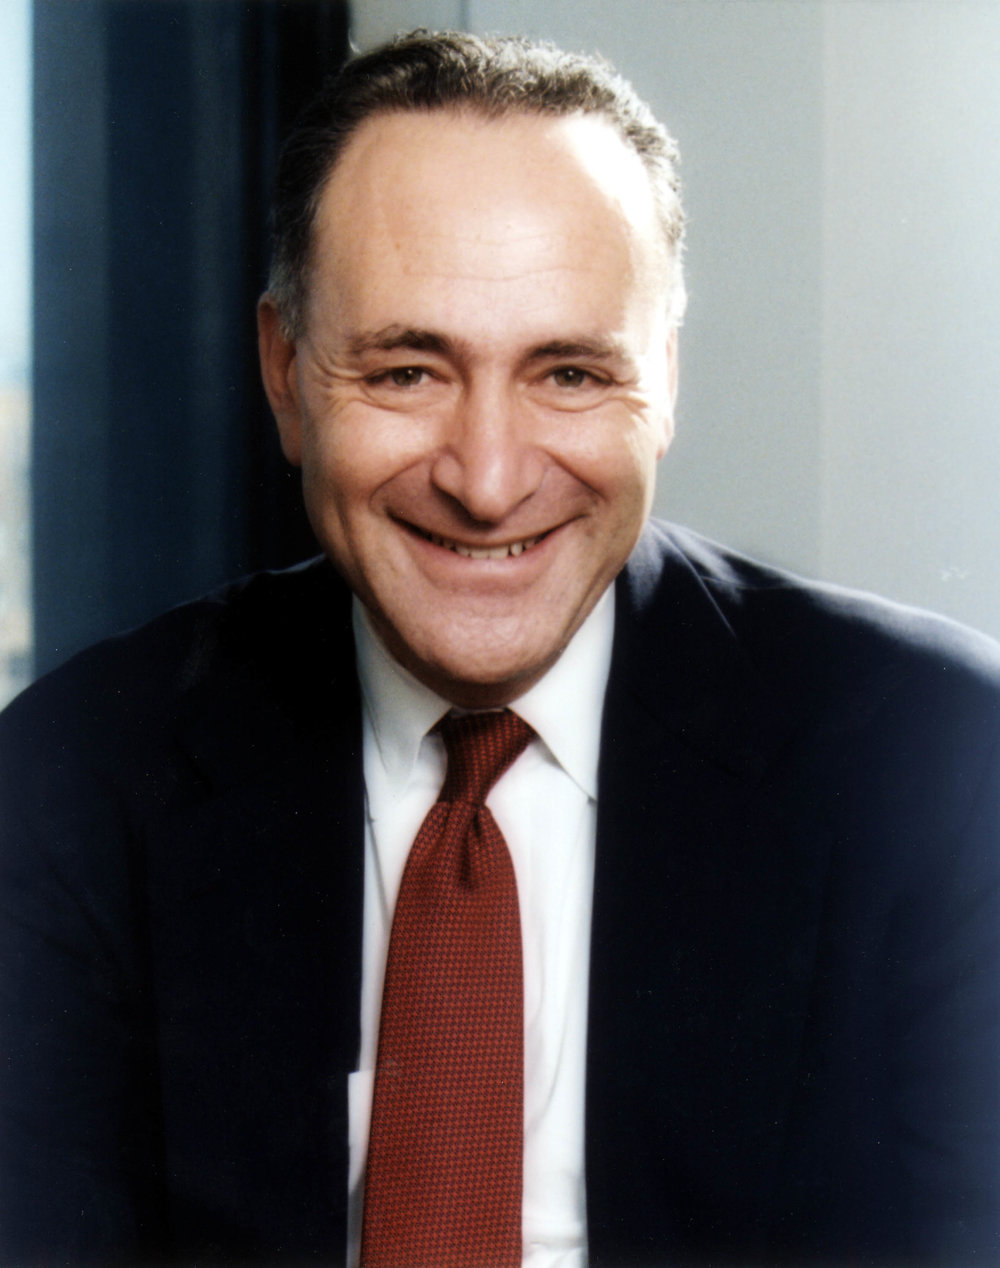 Chuck Schumer Official Portrait